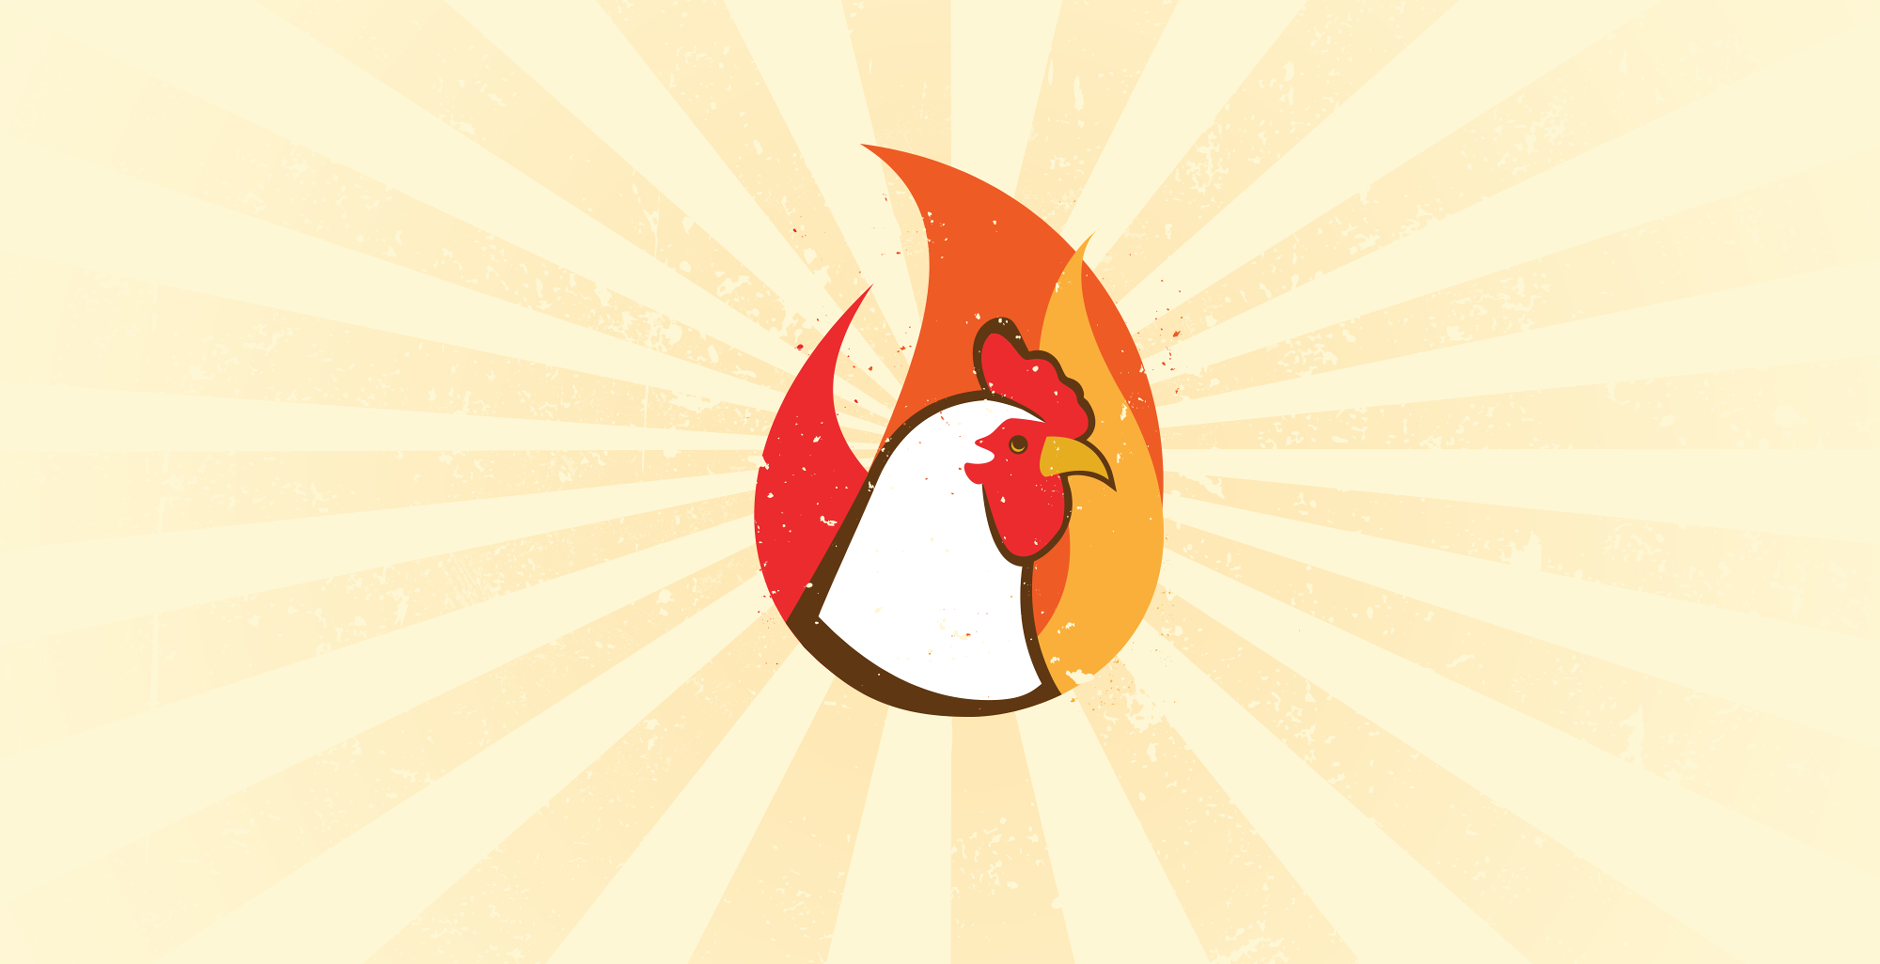 Chicken food logo - photo#25